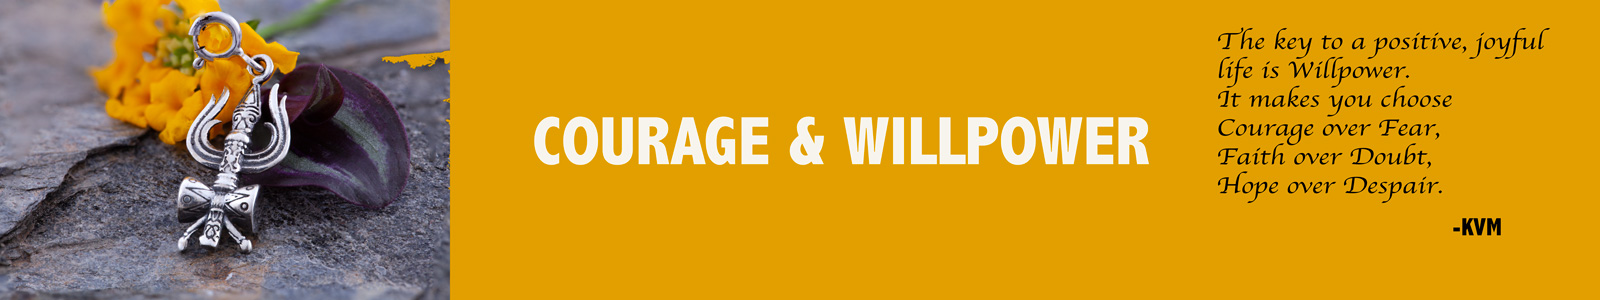 Courage and Willpower